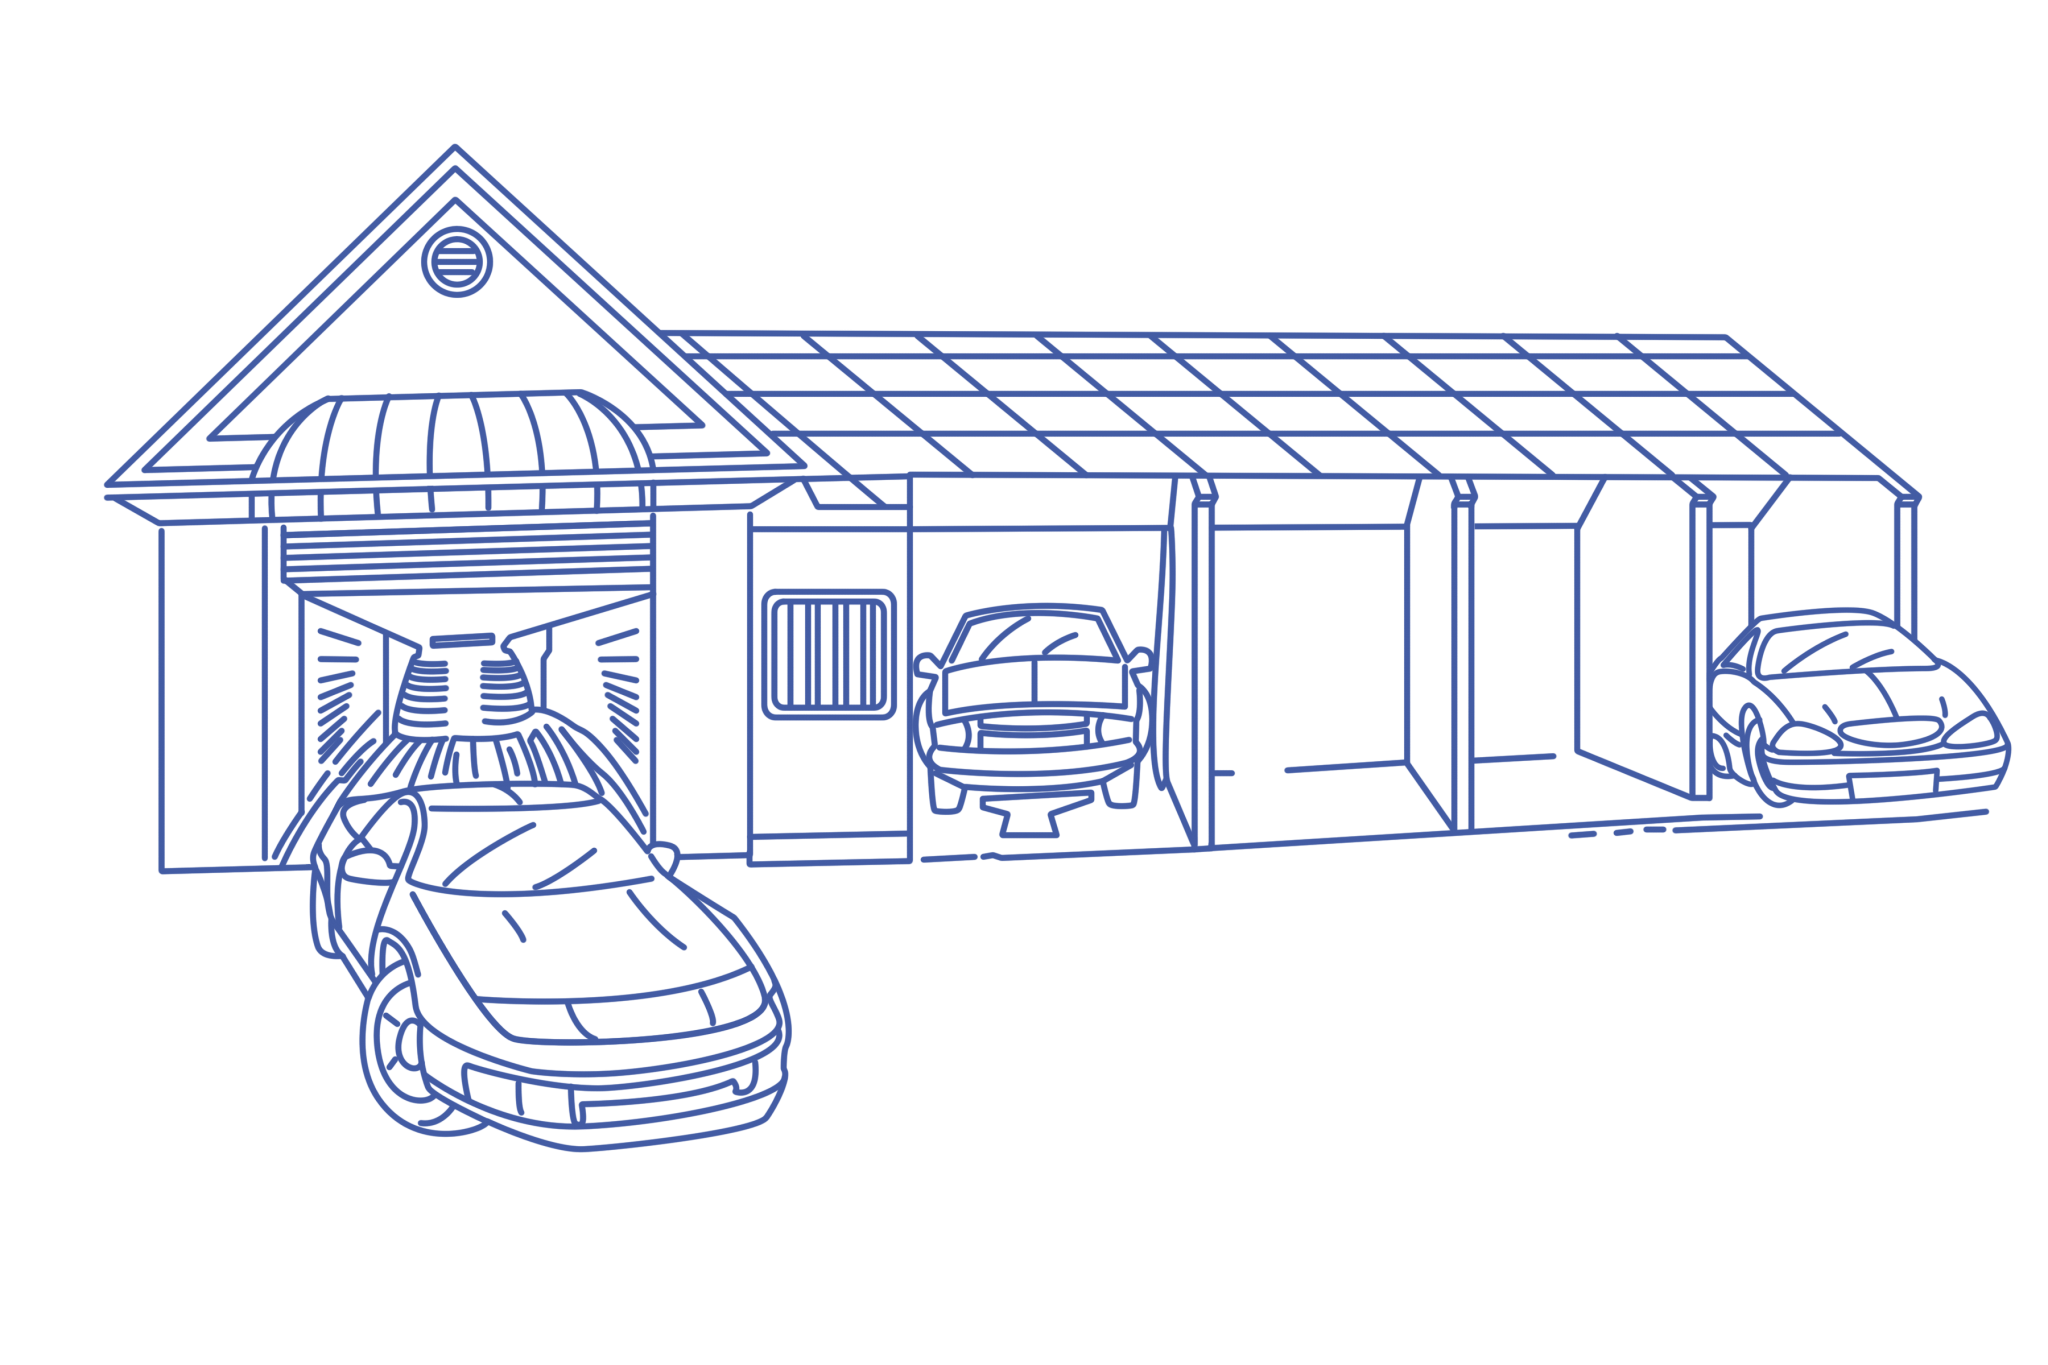 Car wash building clipart png Courthouse Car Wash | The best car wash in Fredericksburg, VA for ... png